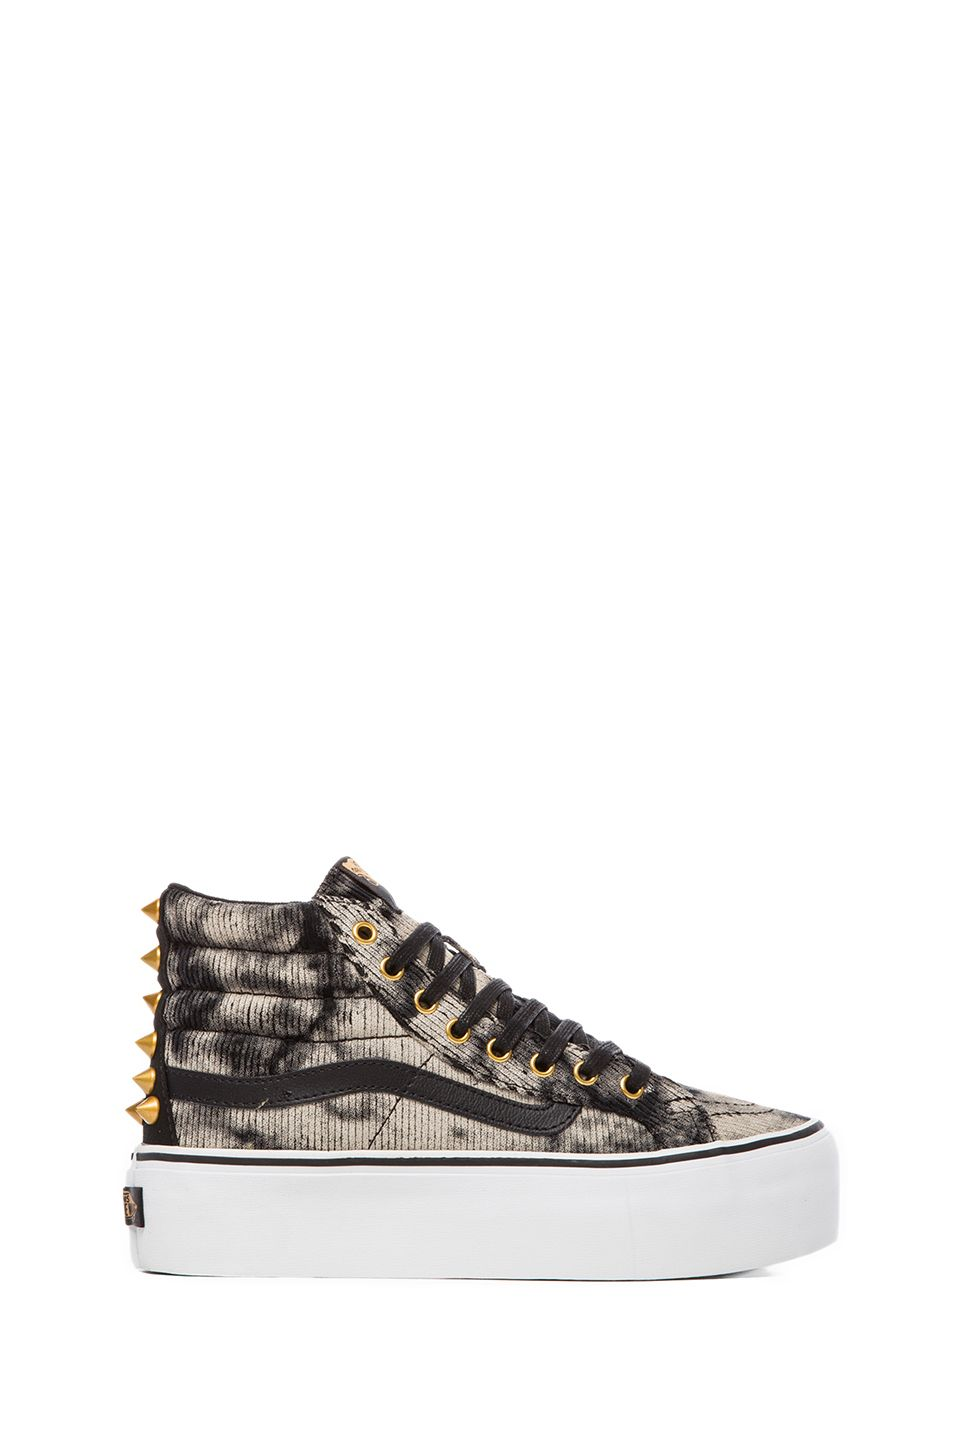 d553d49198c Vans SK8-HI PLATFORM in Black & Washed Cord from REVOLVEclothing ...